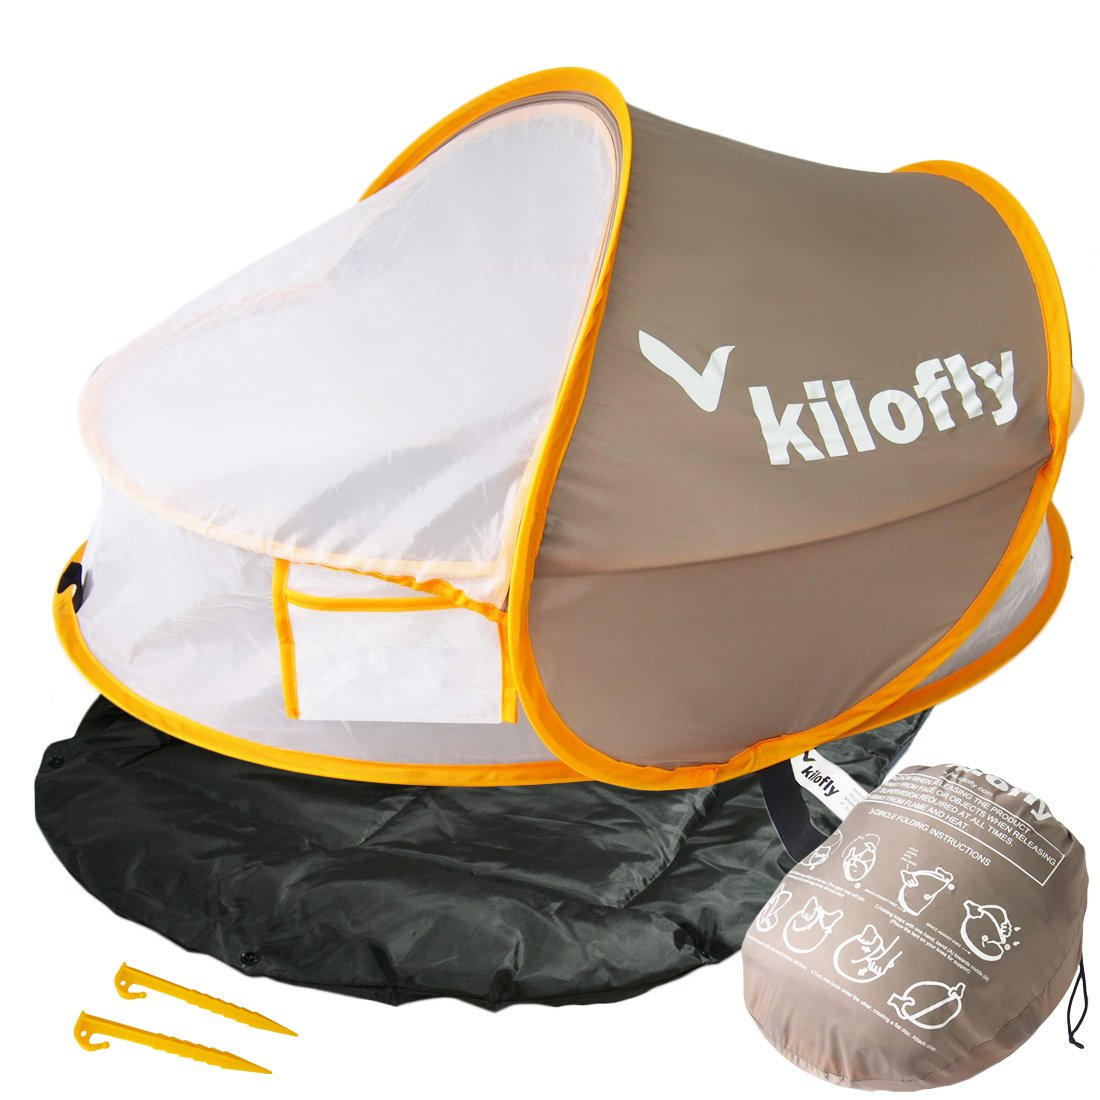 kilofly Instant Pop Up Portable UPF 35+ Baby Travel Bed + Sleeping Pad, 2 Pegs by KF baby